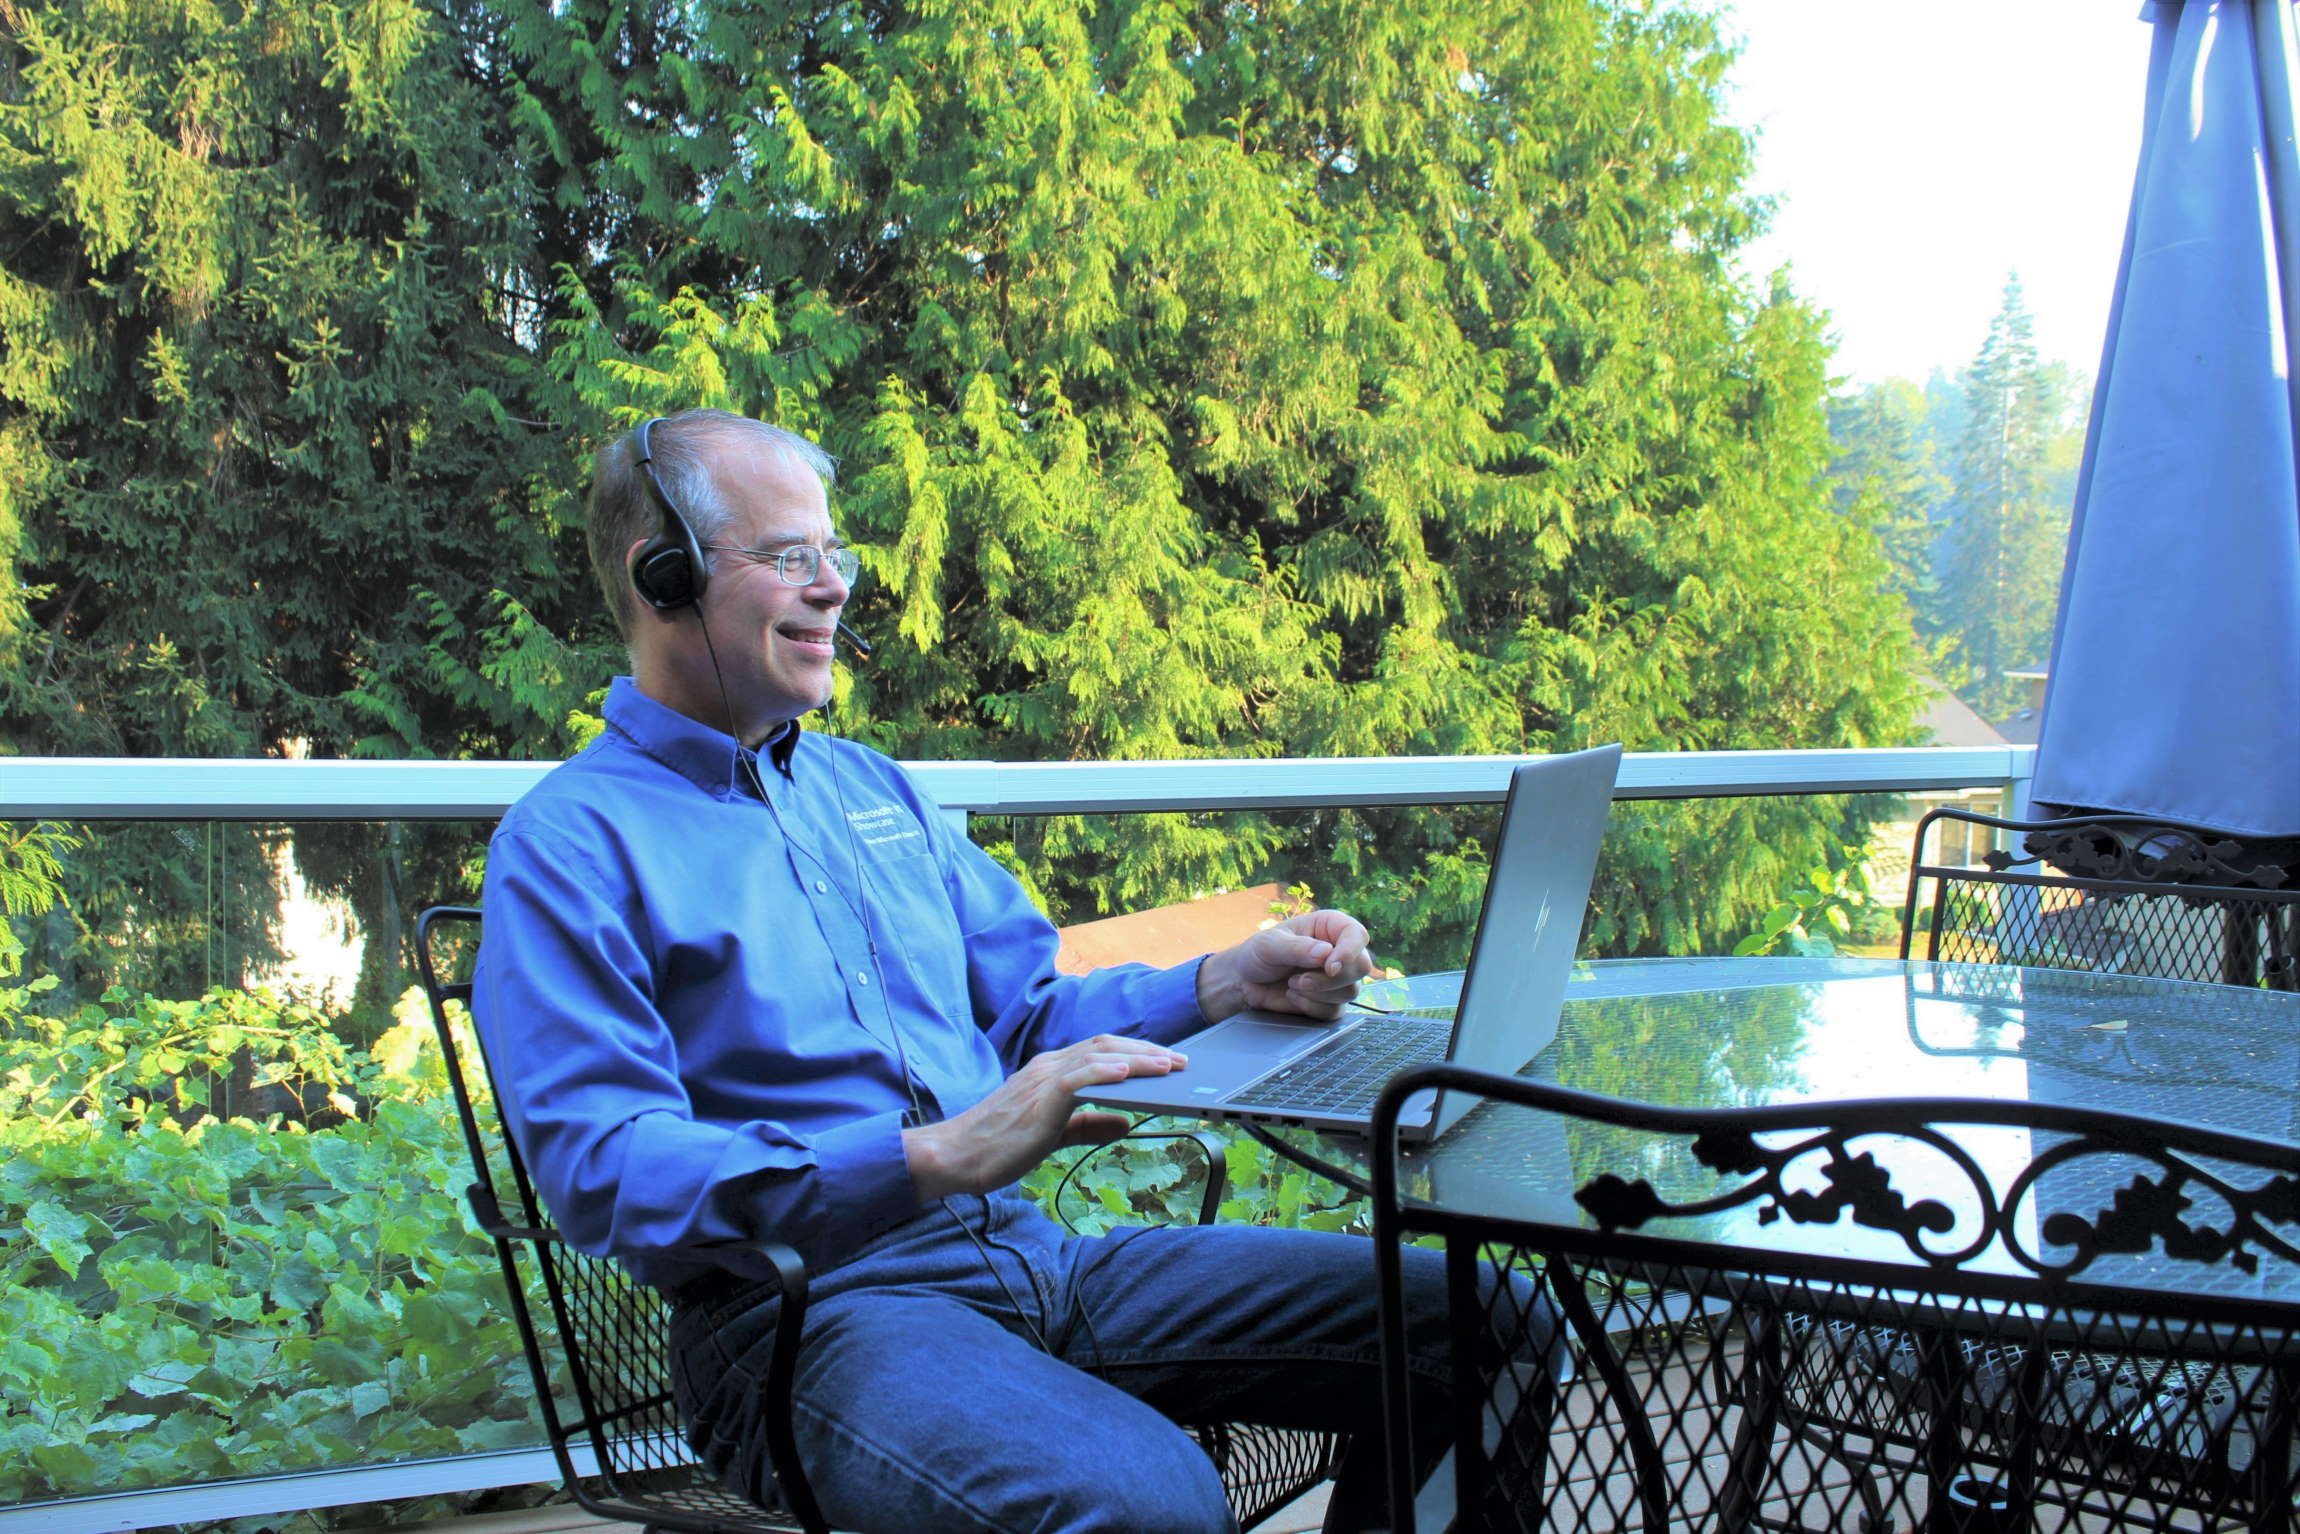 Dodd Willingham sits on his porch with his laptop, checking in with his search administration team.